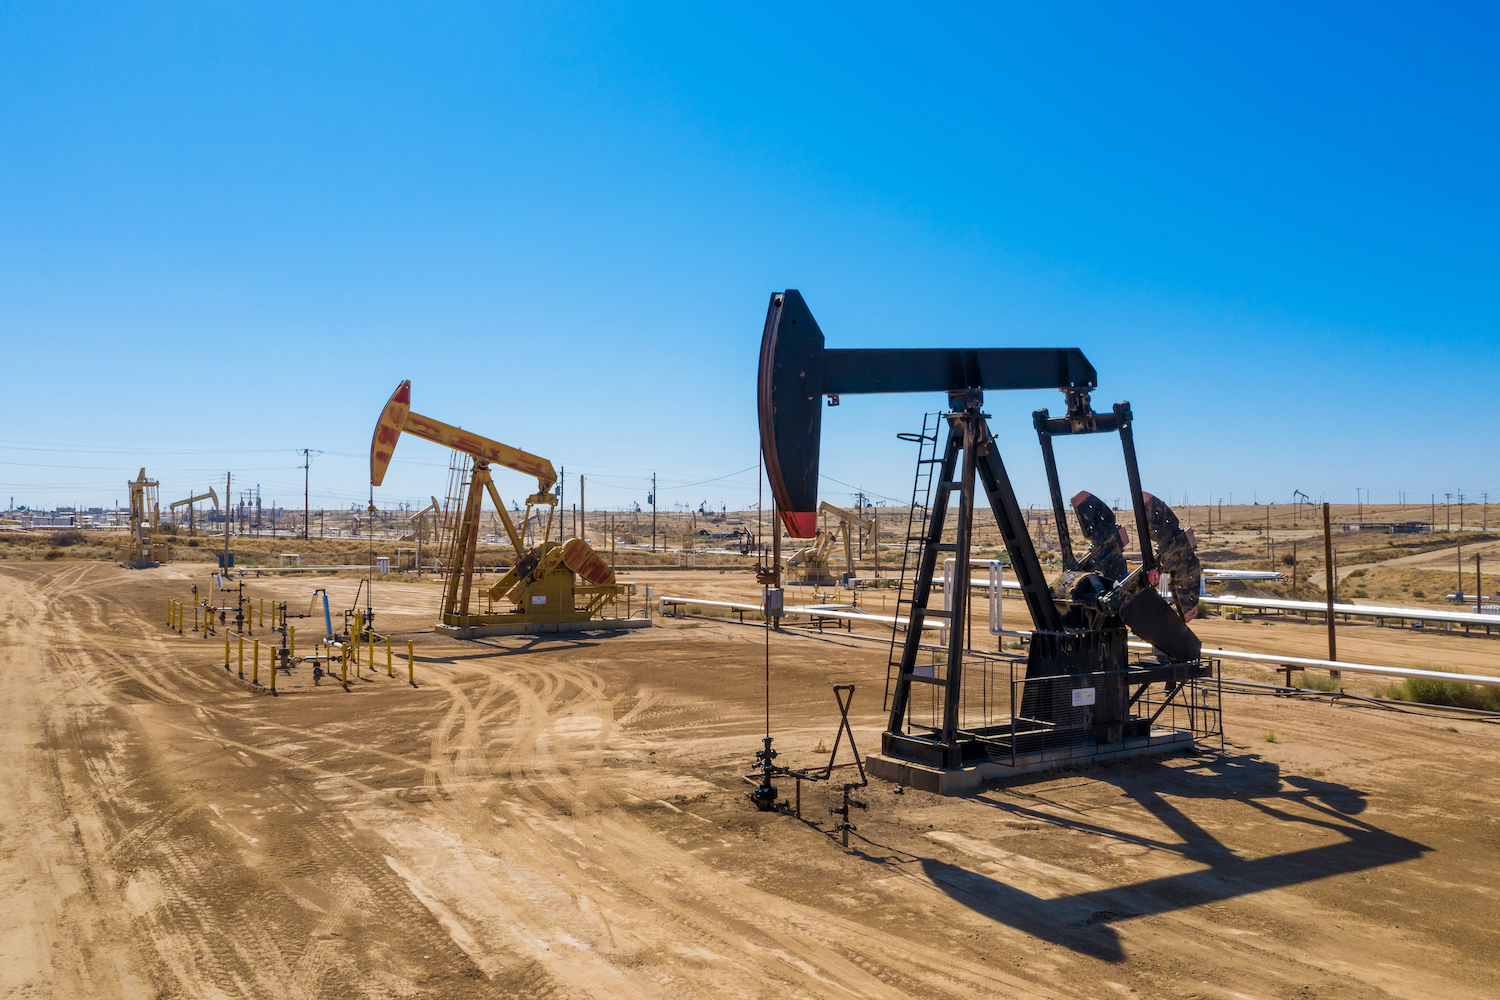 oil derrick pumps in a sandy field during the day with blue sky